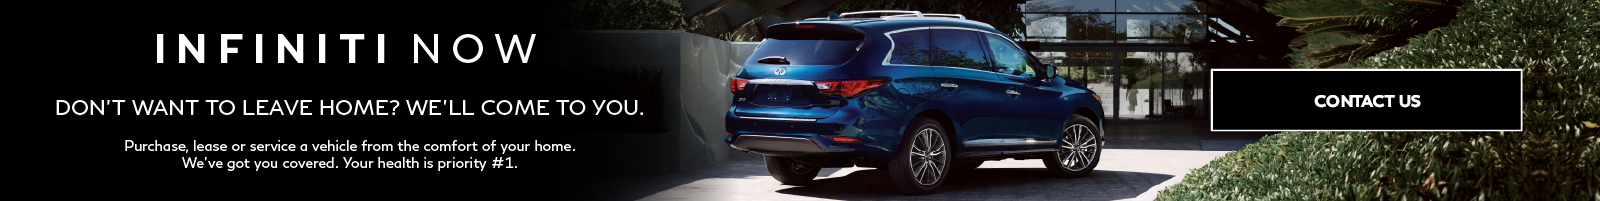 INFINITI Now. Don't want to leave home? We'll come to you. Click to contact us.